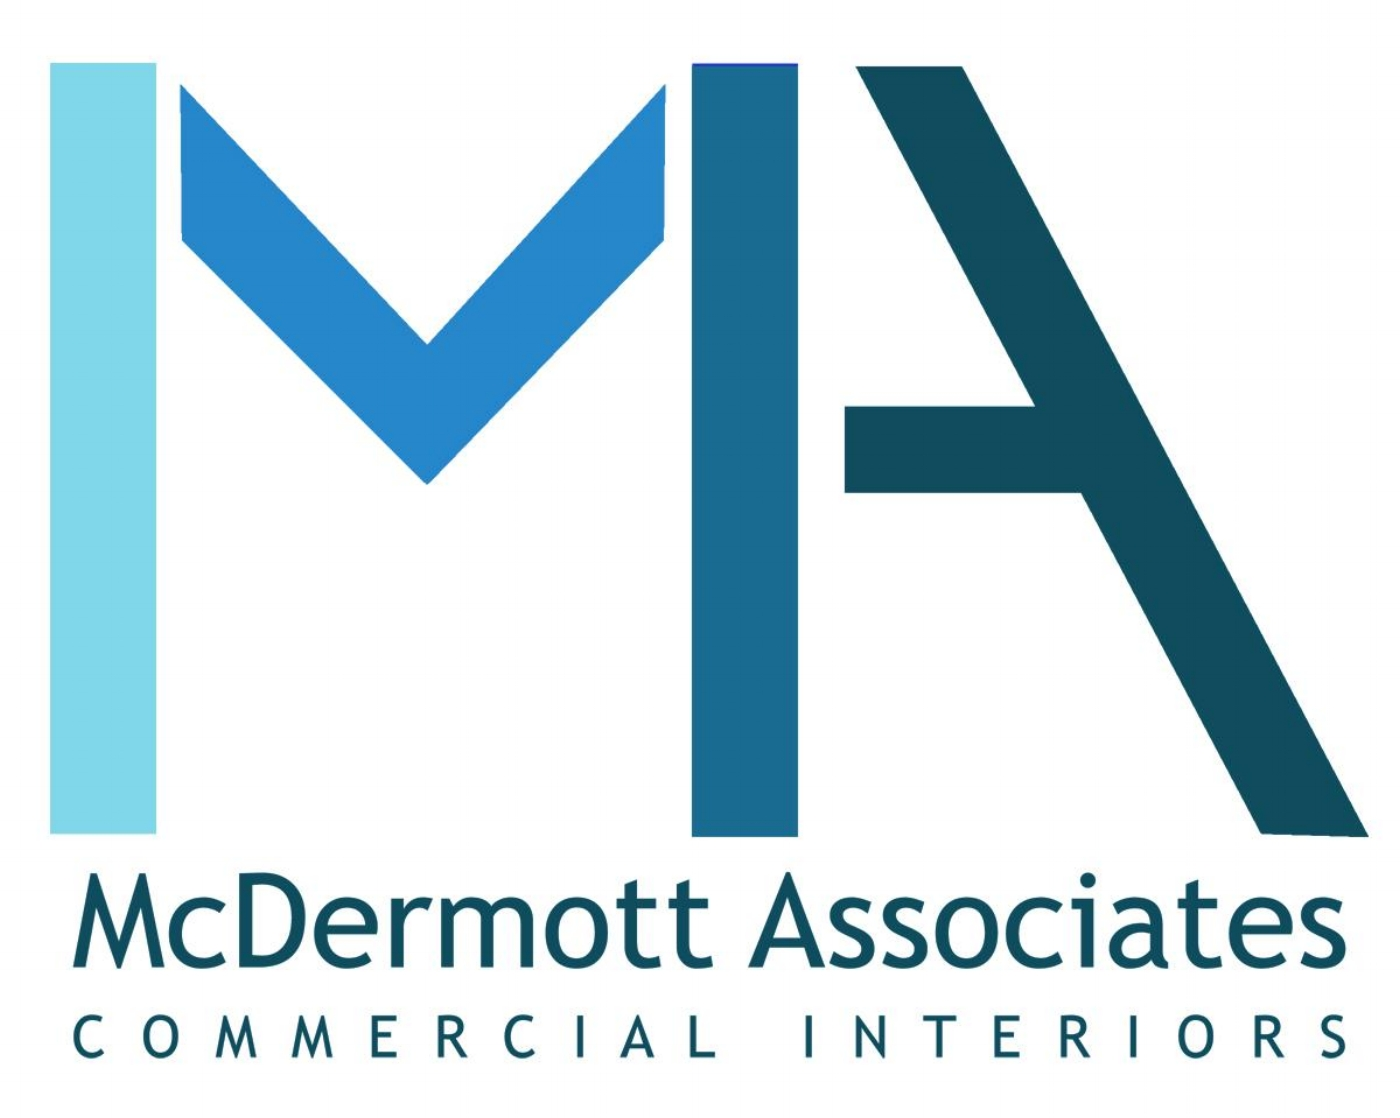 McDermott Associates Commercial Interior Architecture